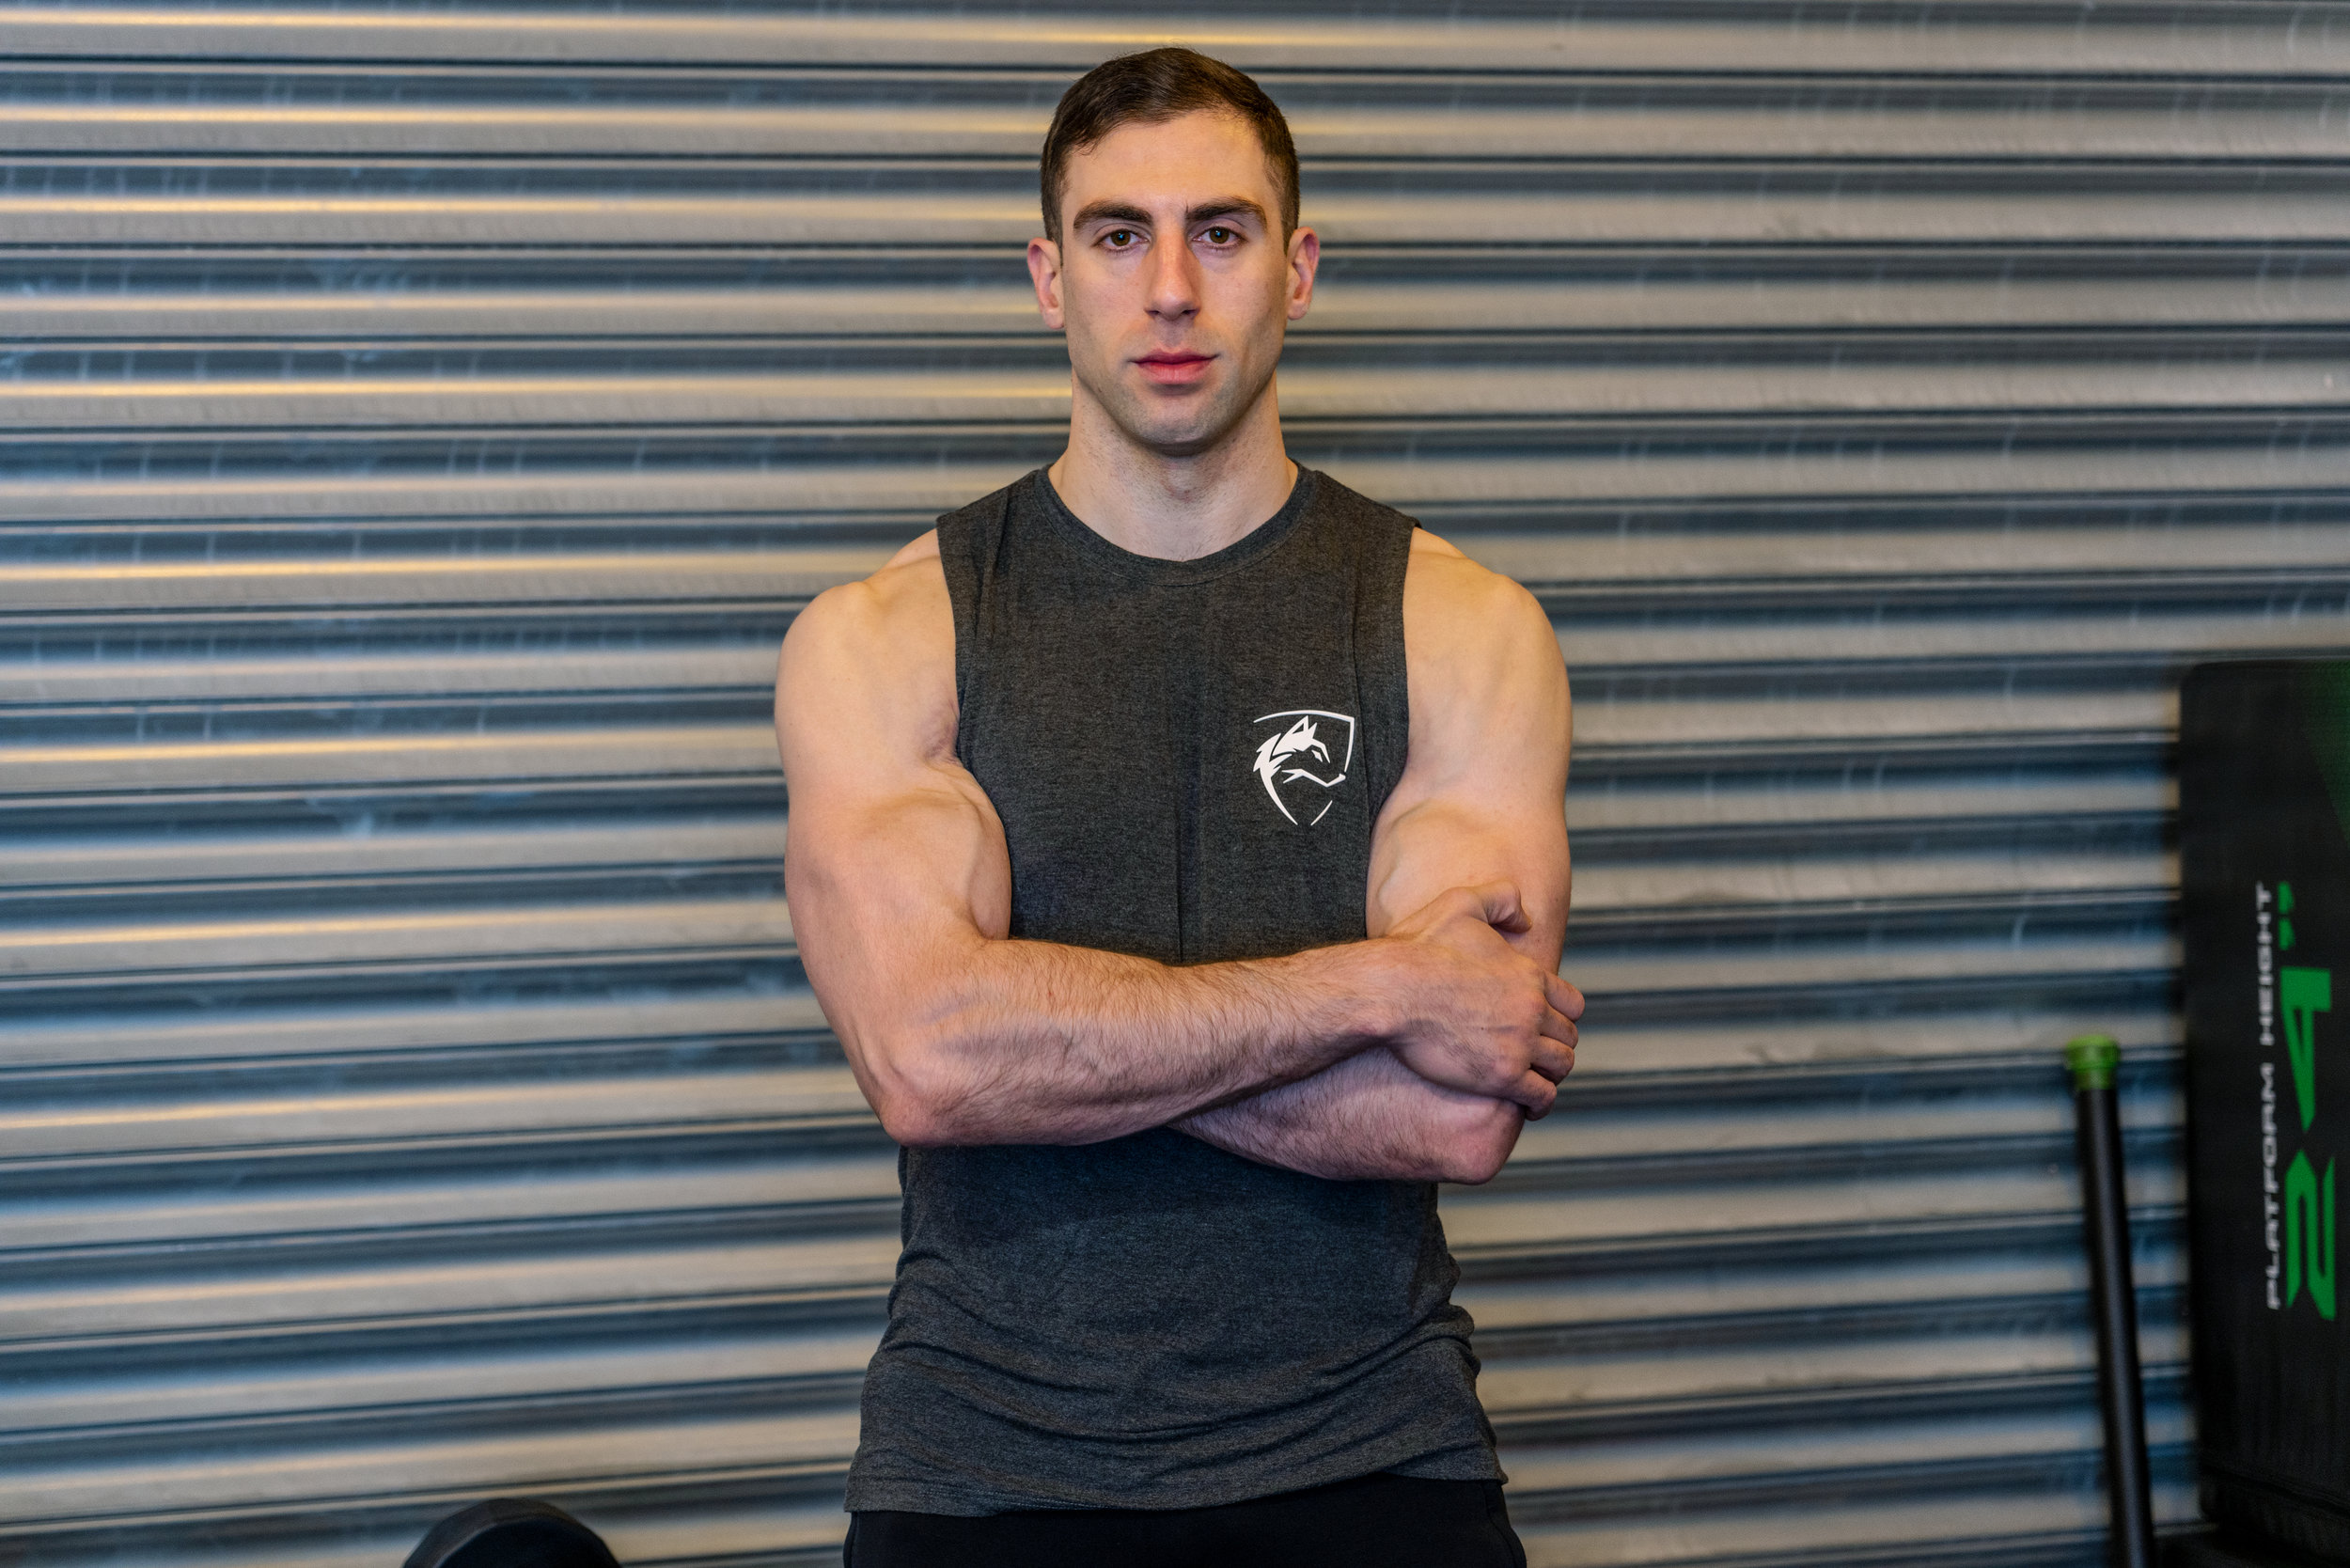 Adam Murad - Personal Trainer at Sw3at Studio